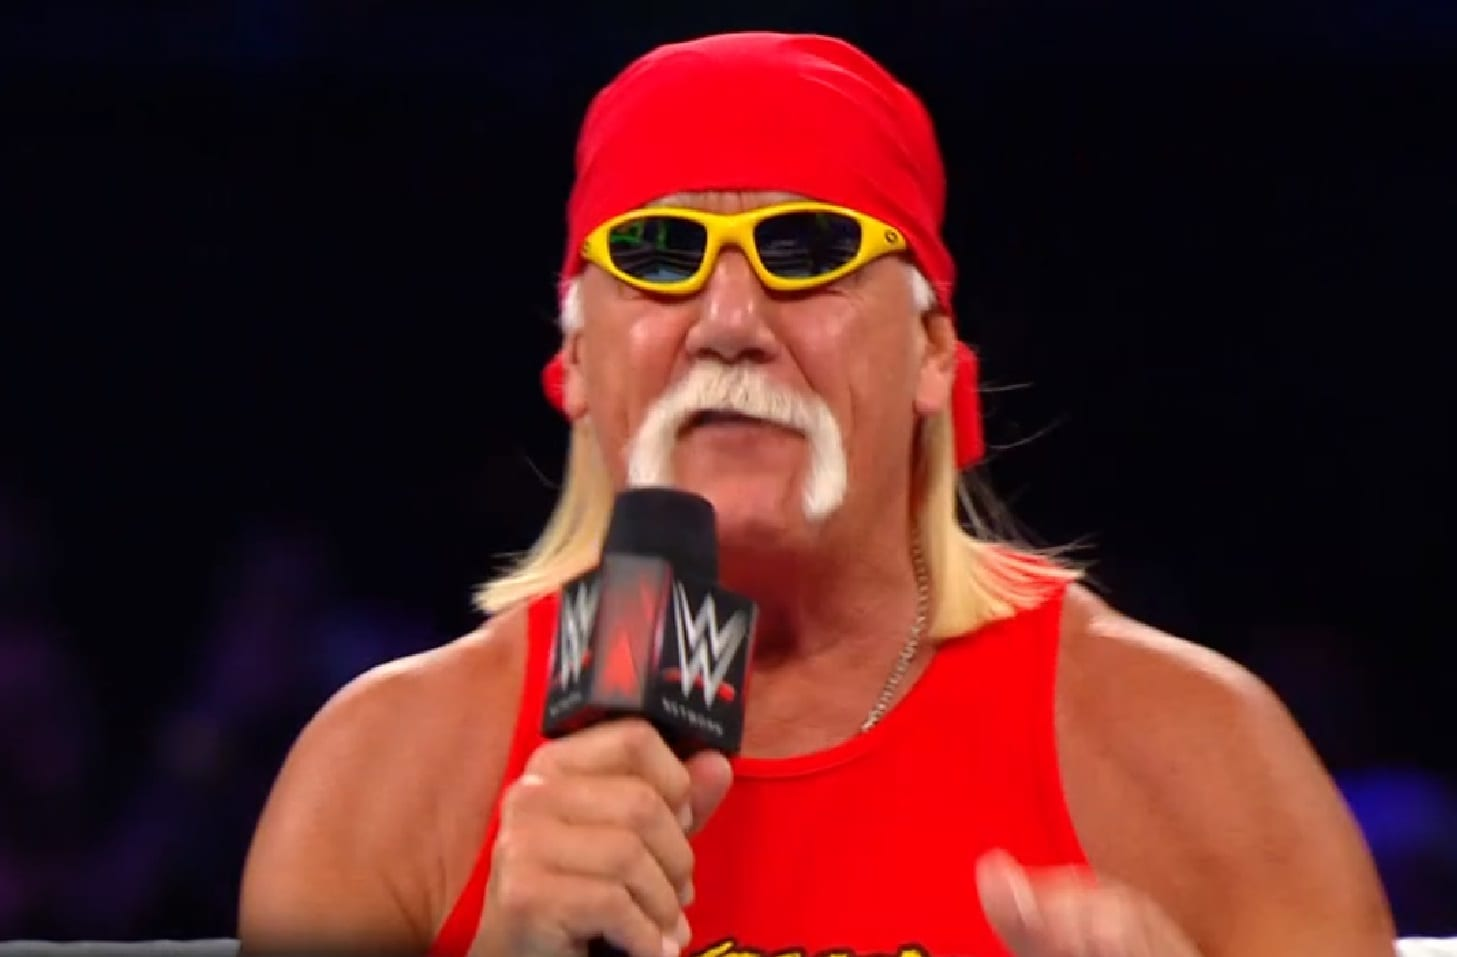 Hogan Hulk Odds Of Hulk Hogan 39s Wwe Royal Rumble Appearance Just Got